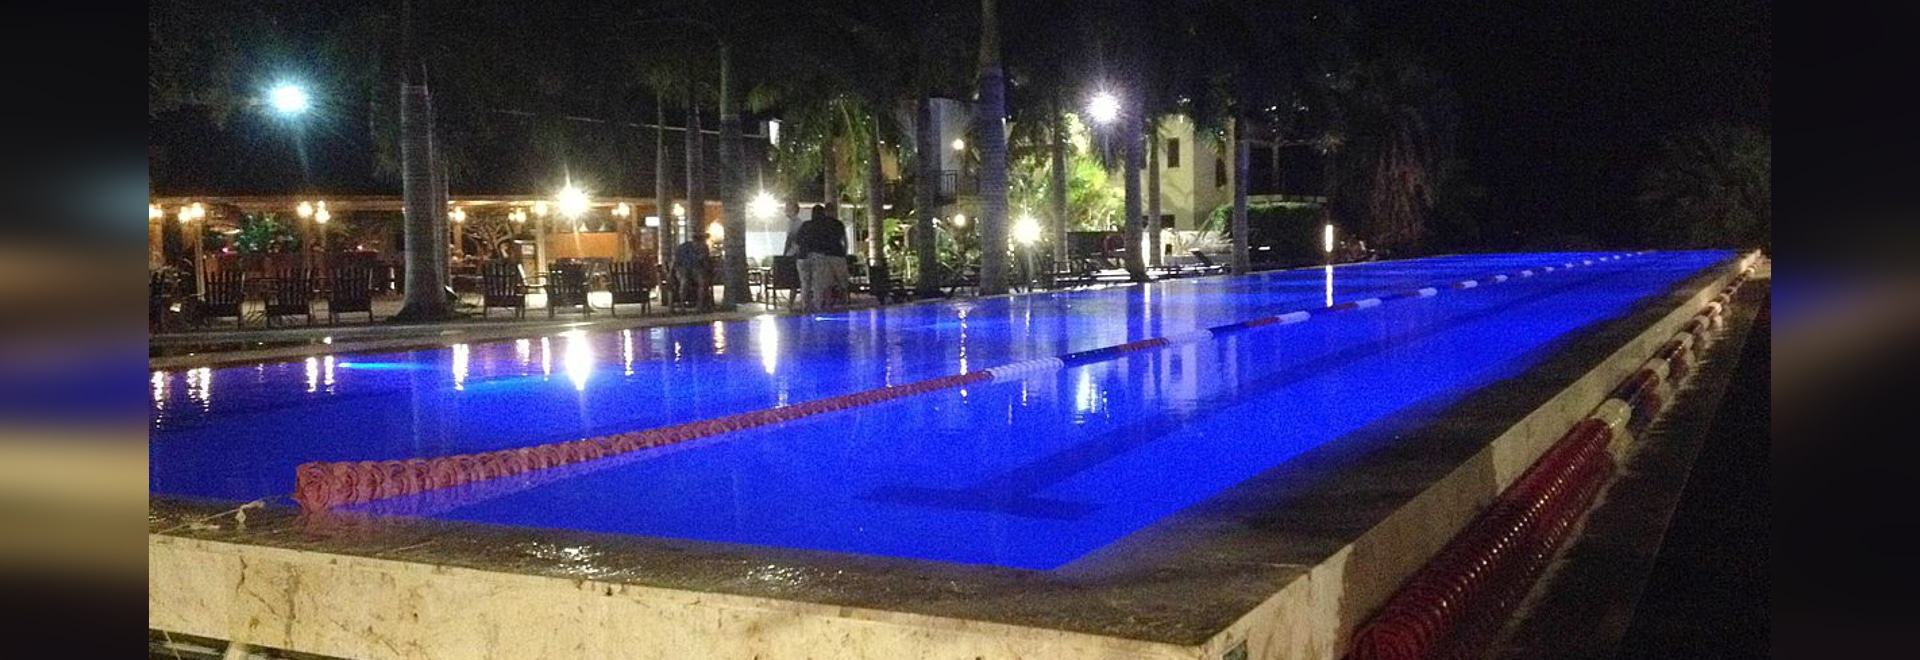 Pool LED Lights METEOR: for new installations and any replacement